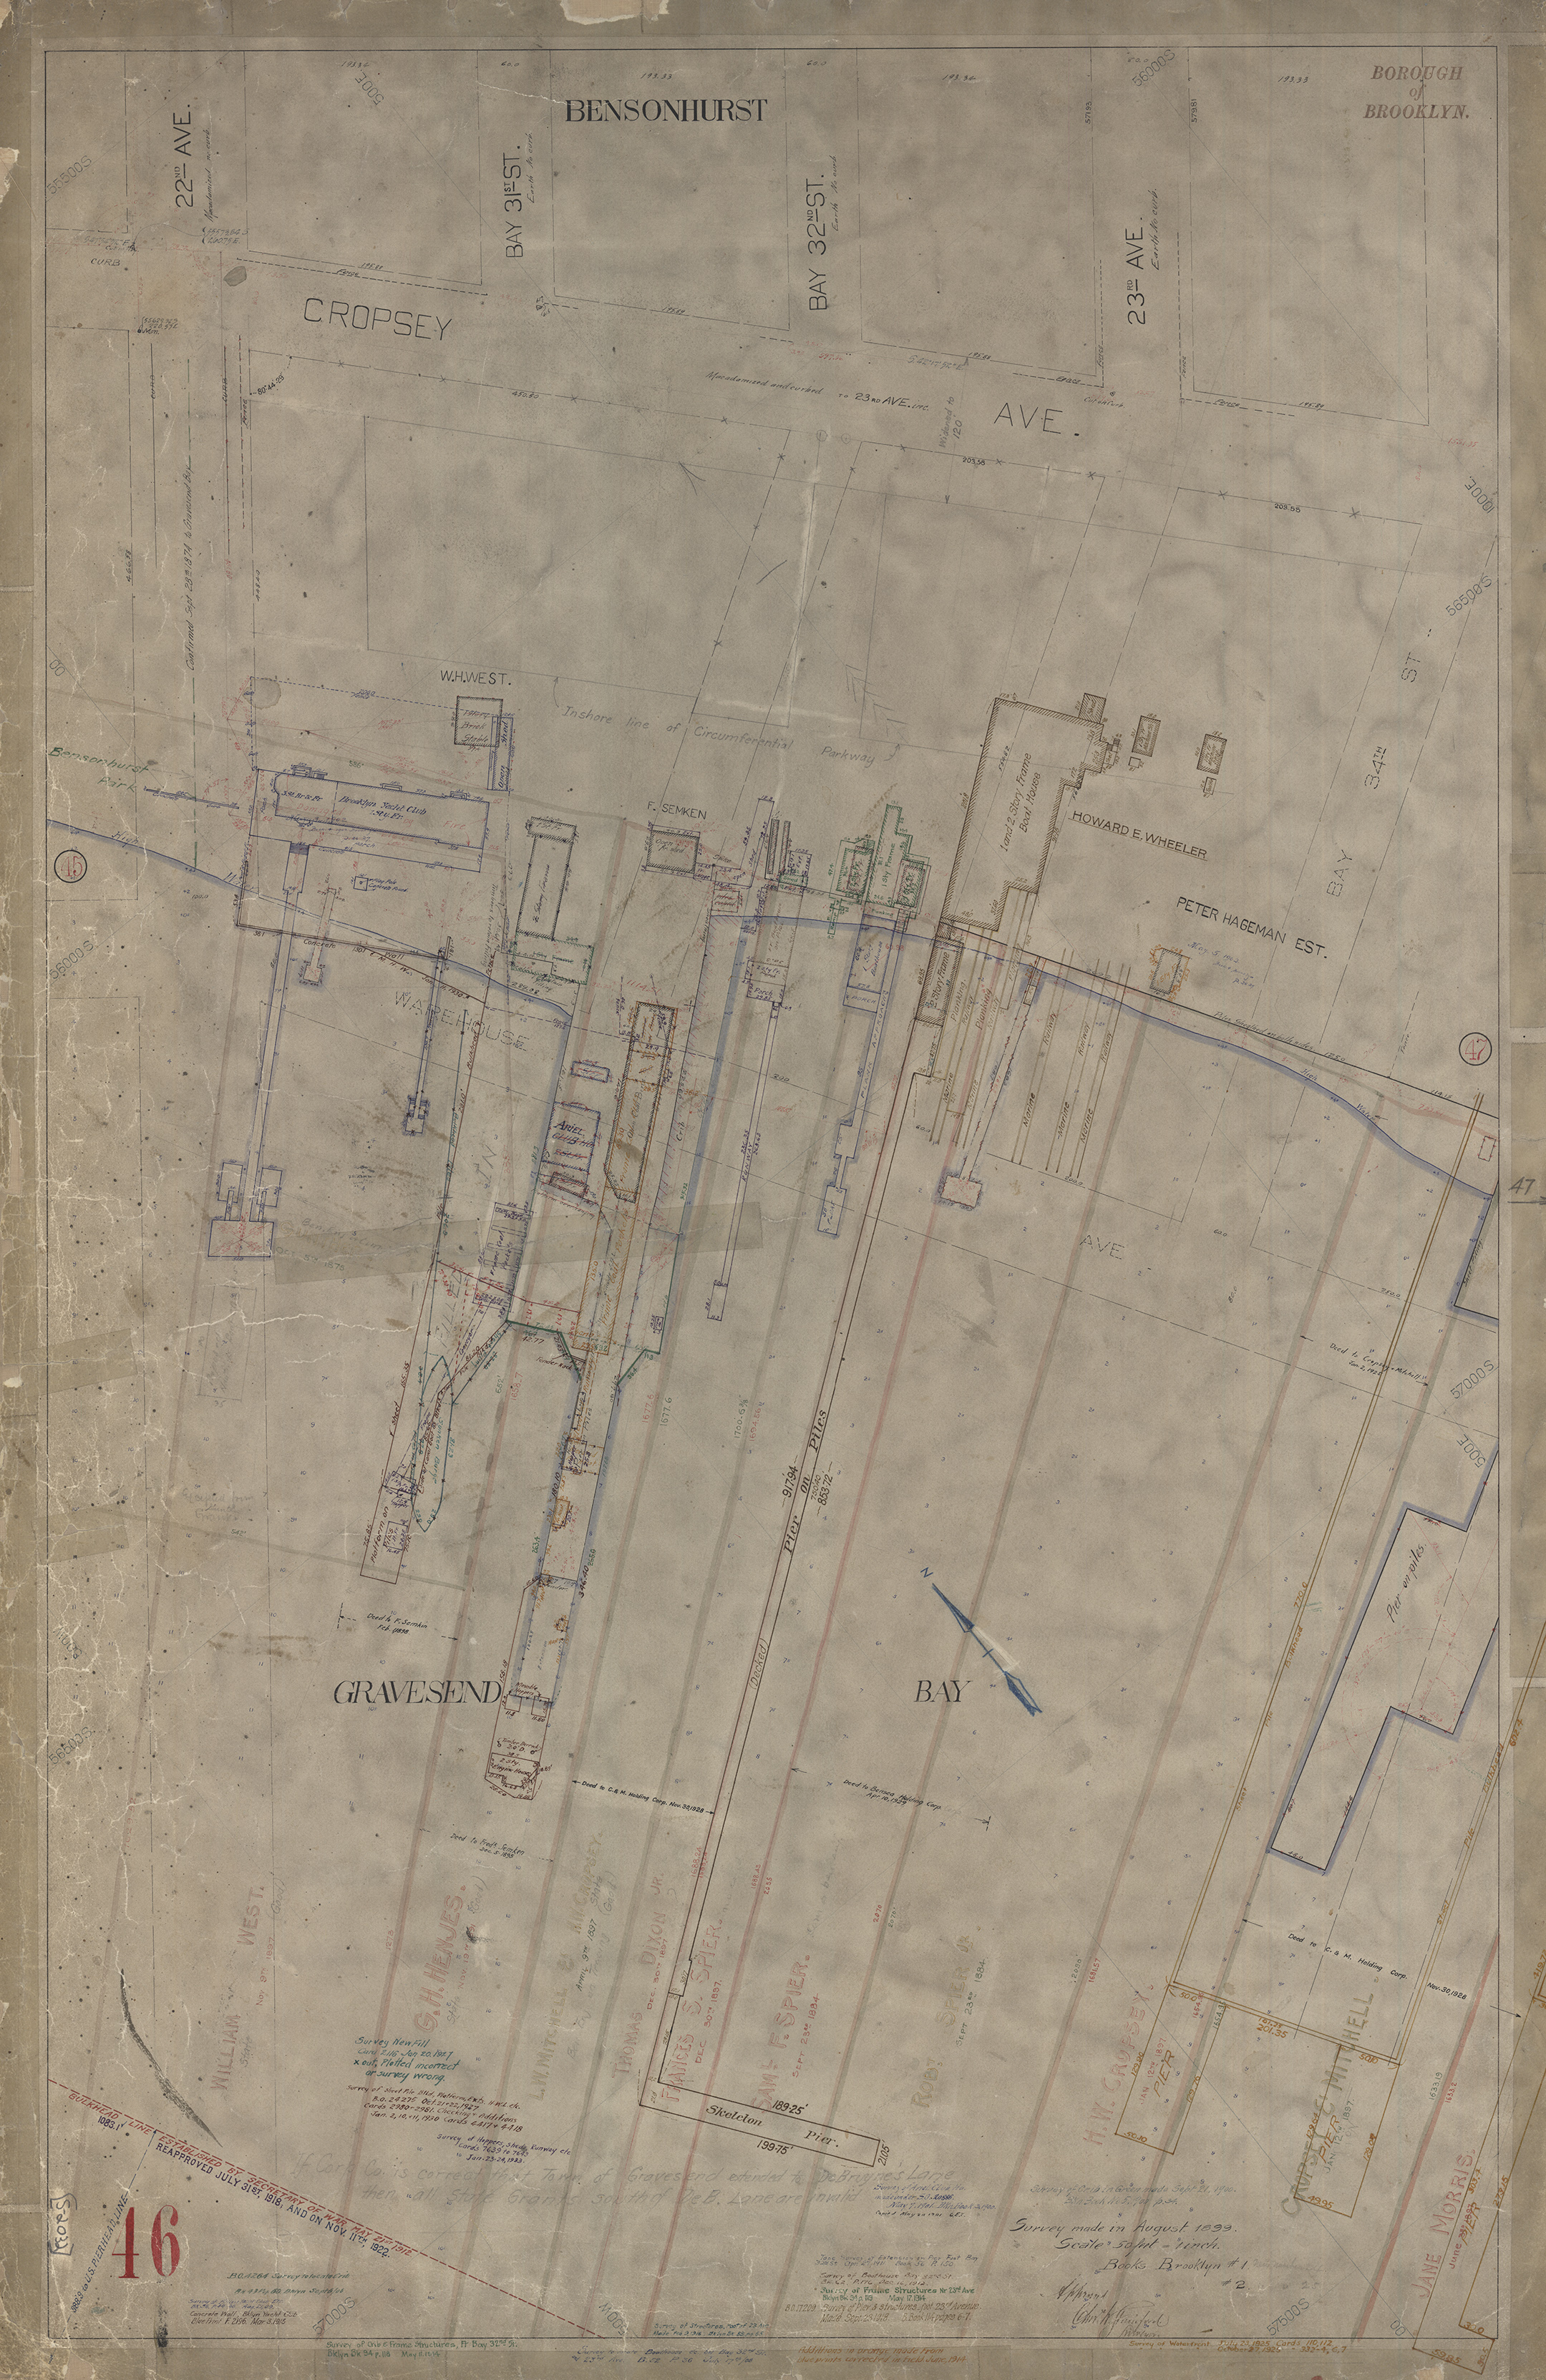 Waterfront Survey Map #2032 - Brooklyn Red Survey Map 46, Bensonhurst/Gravesend Bay, August, 1899, updated through the 1960s.. Department of Ports and Trade Collection, NYC Municipal Archives